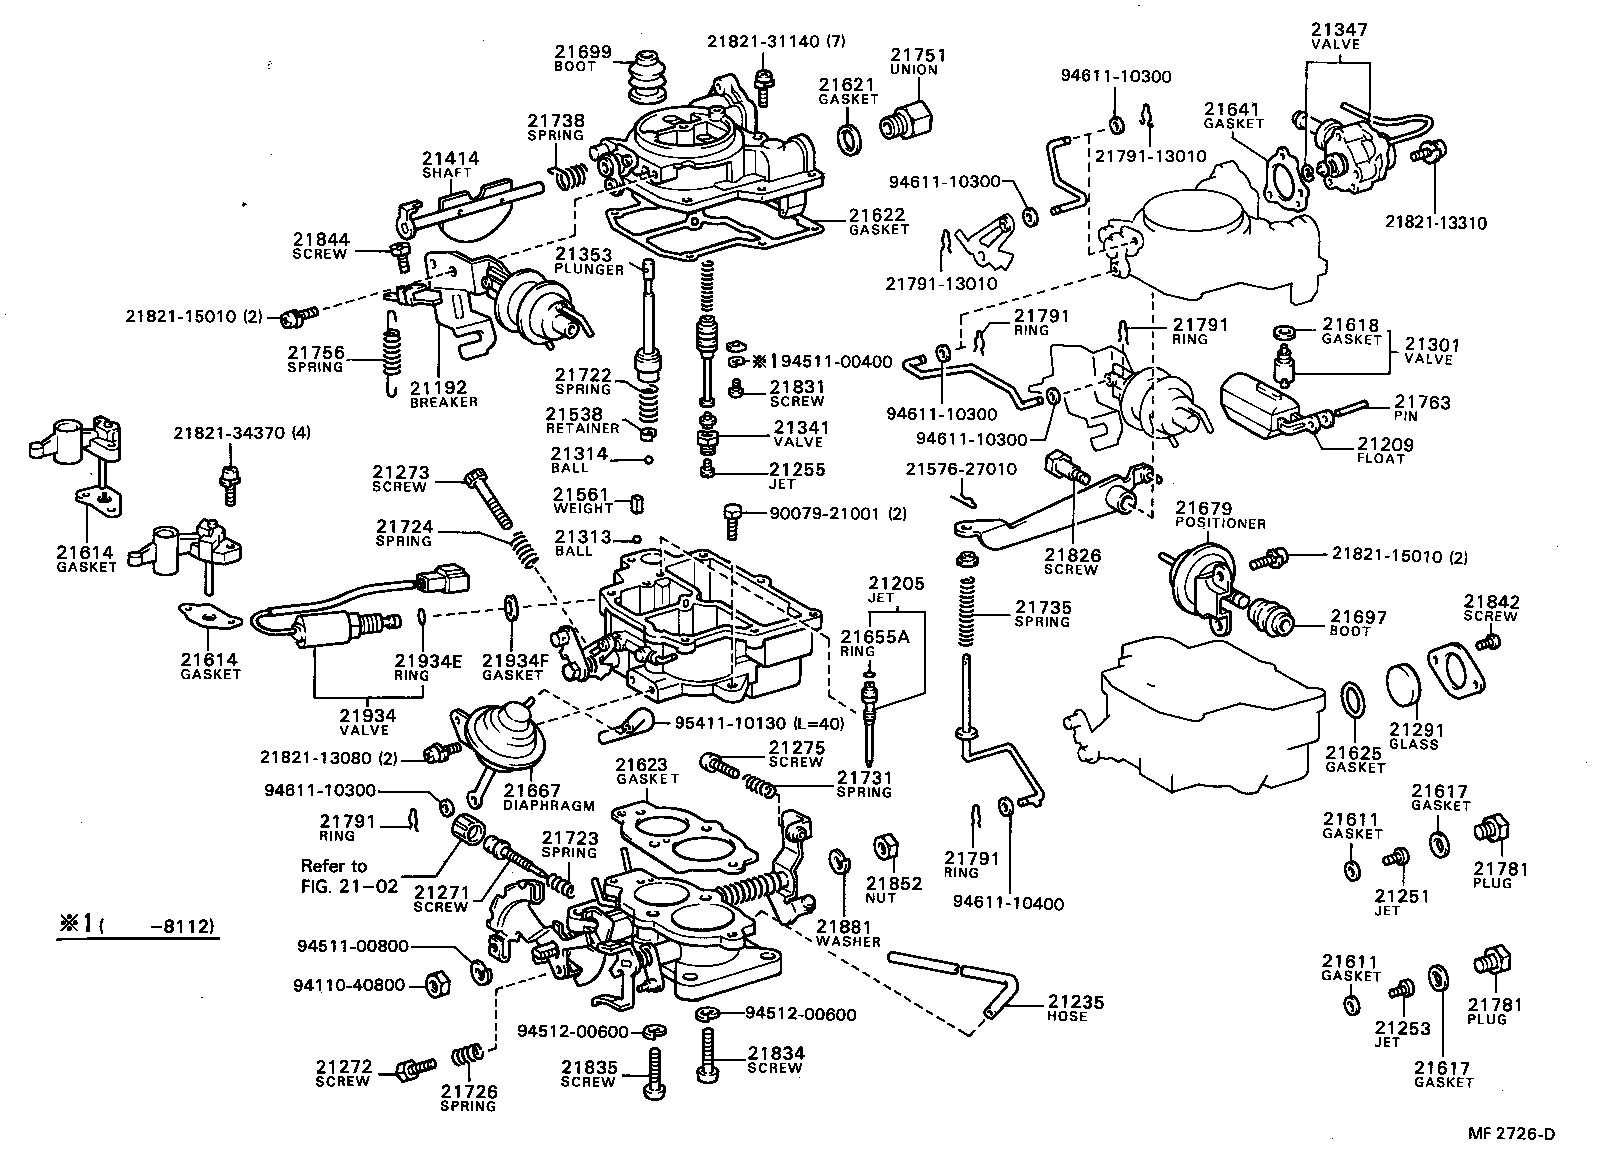 1986 Toyota Corolla Alternater Diagram